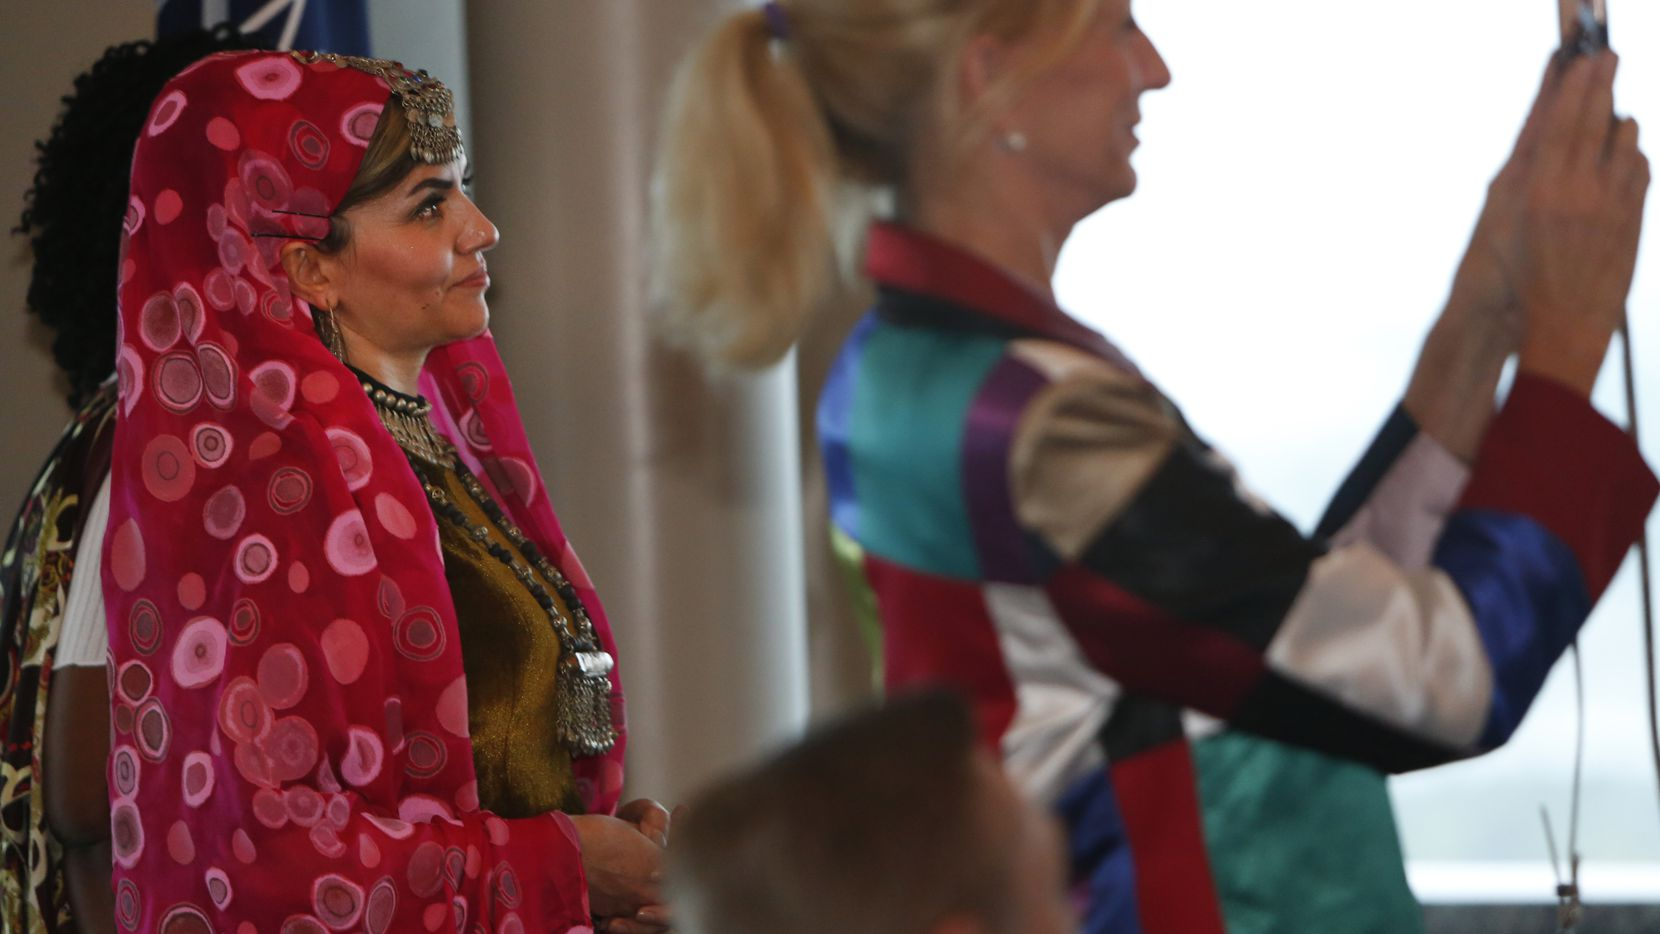 Mohsina Sageb (left), president and designer of Jama Sageb handicraft company in Afghanistan, watched a fellow graduate cross the stage at graduation ceremonies for attendees of the Peace Through Business entrepreneurial boot camp in Irving in 2018.